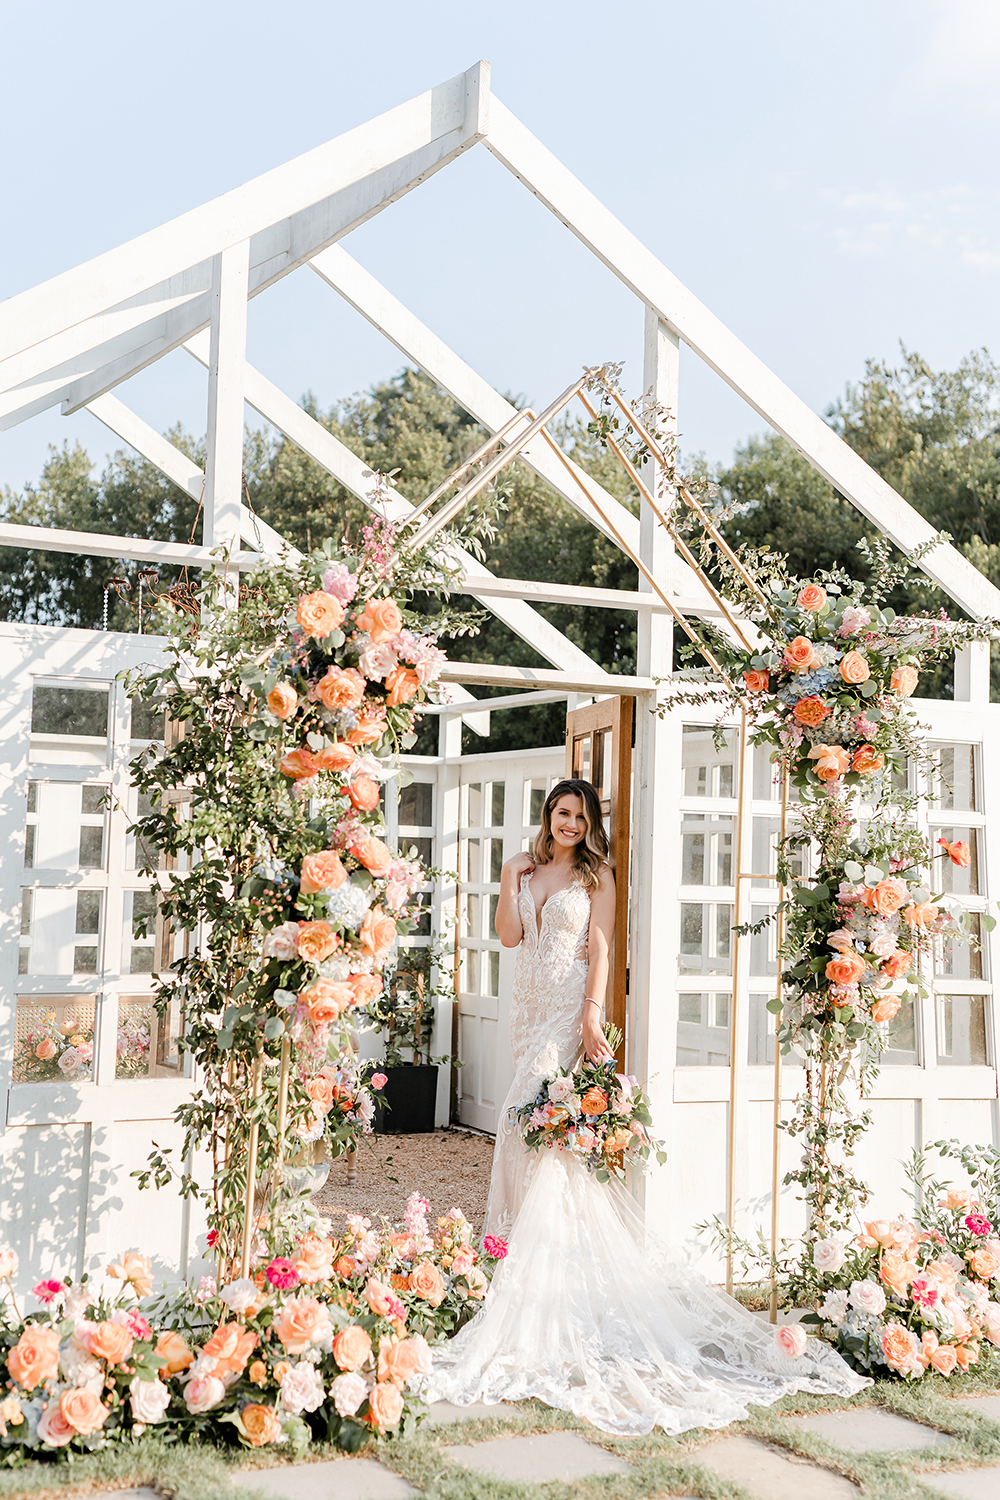 A bride in a white lace fitted gown holding a floral bouquet that matched the floral decor all around her in a white atrium full of glass windows.